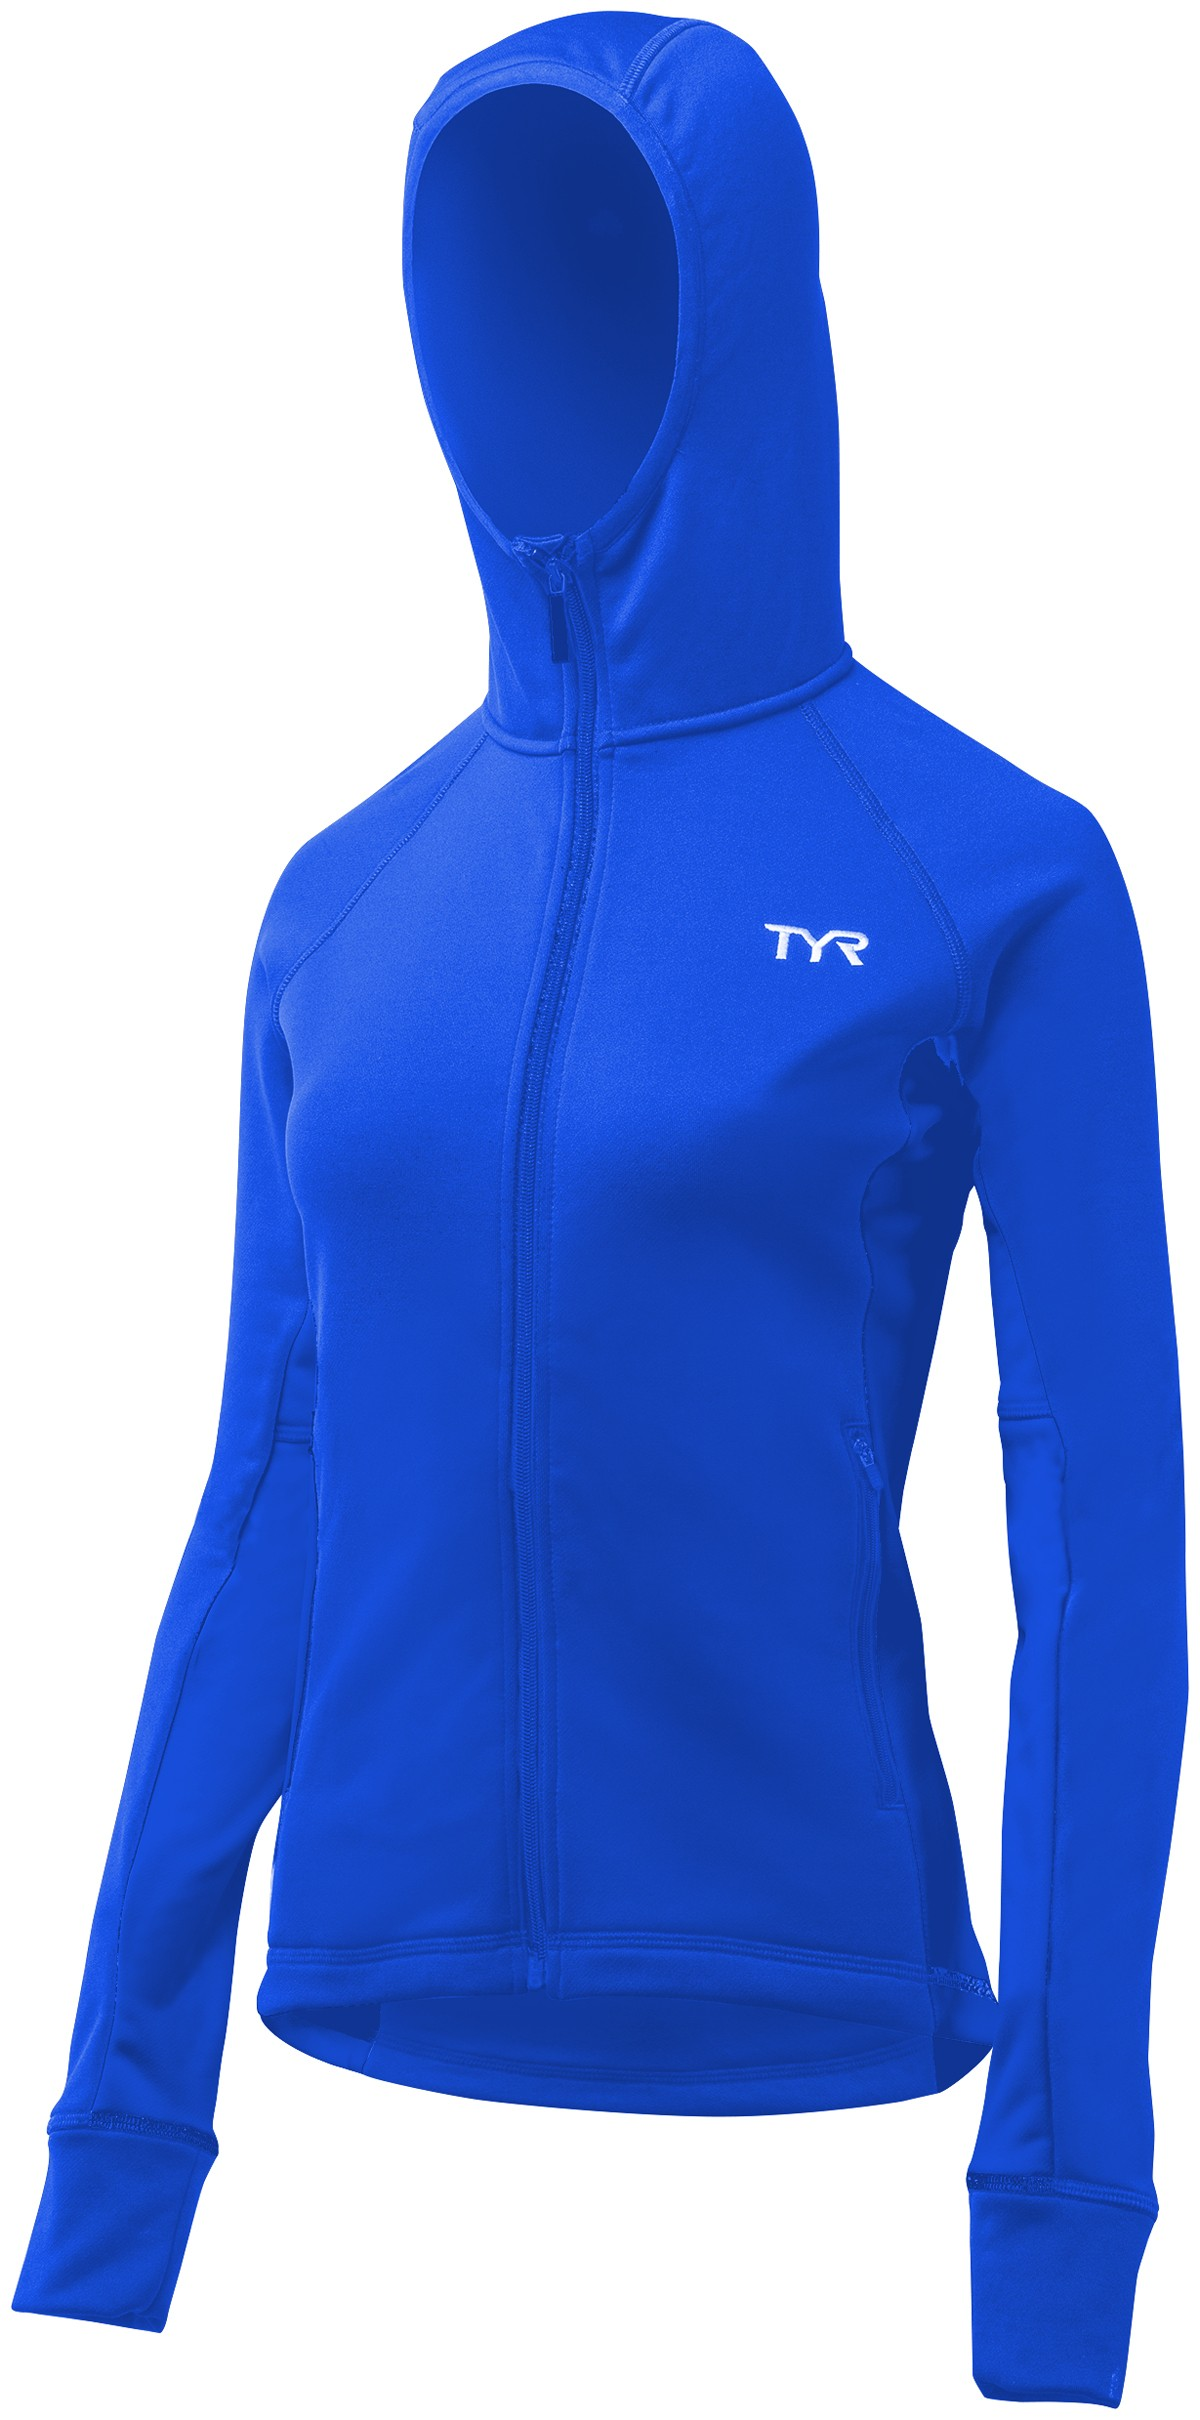 TYR Women's Victory Warm Up Jacket ( Royal (428))